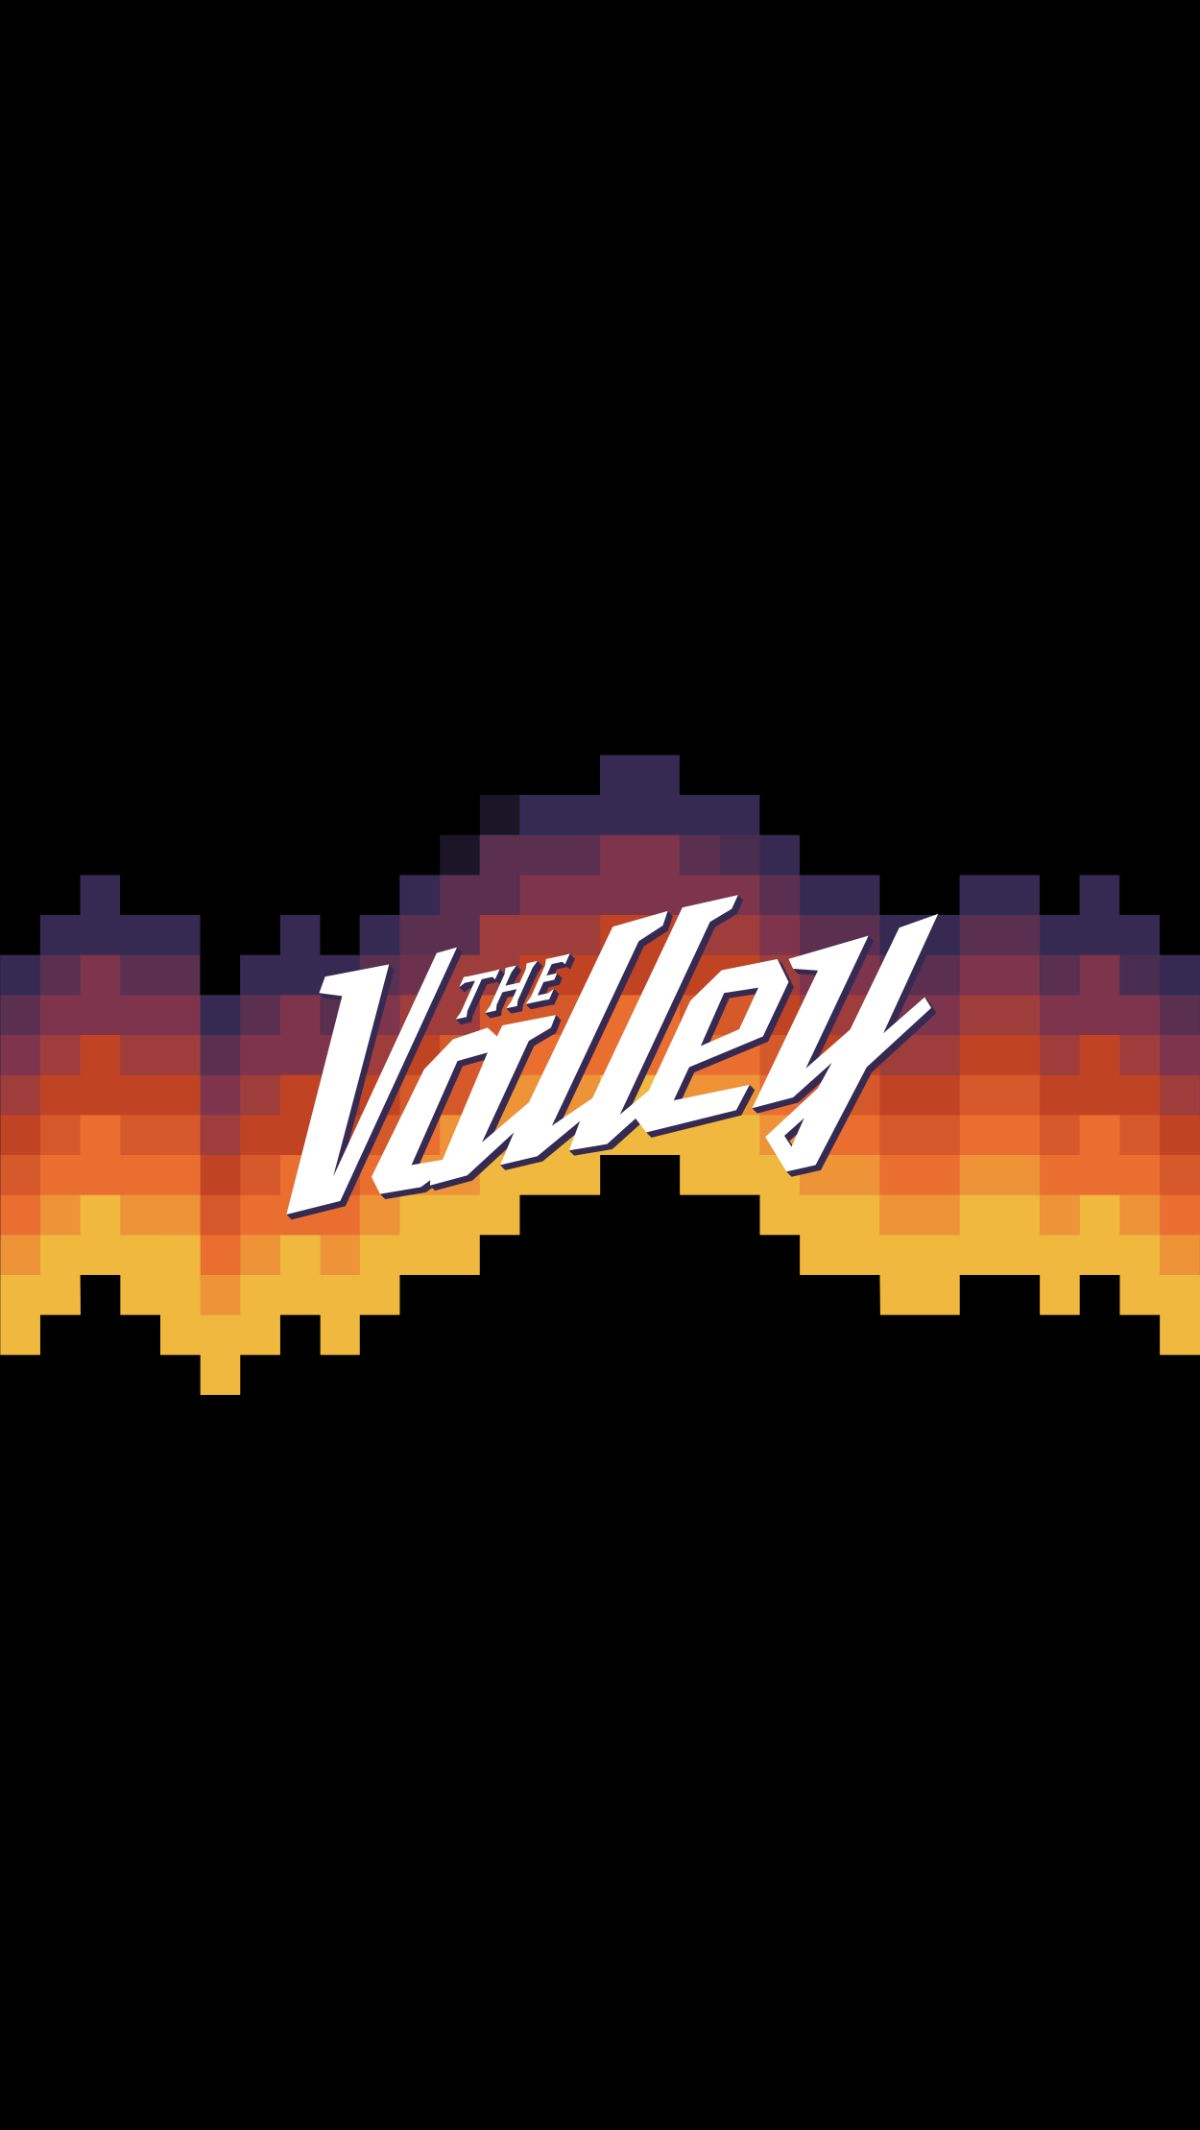 The Valley Highest Quality Phoenix Basketball Tapestry By Sportsign In 2021 Phoenix Basketball Phoenix Suns Basketball Suns Basketball